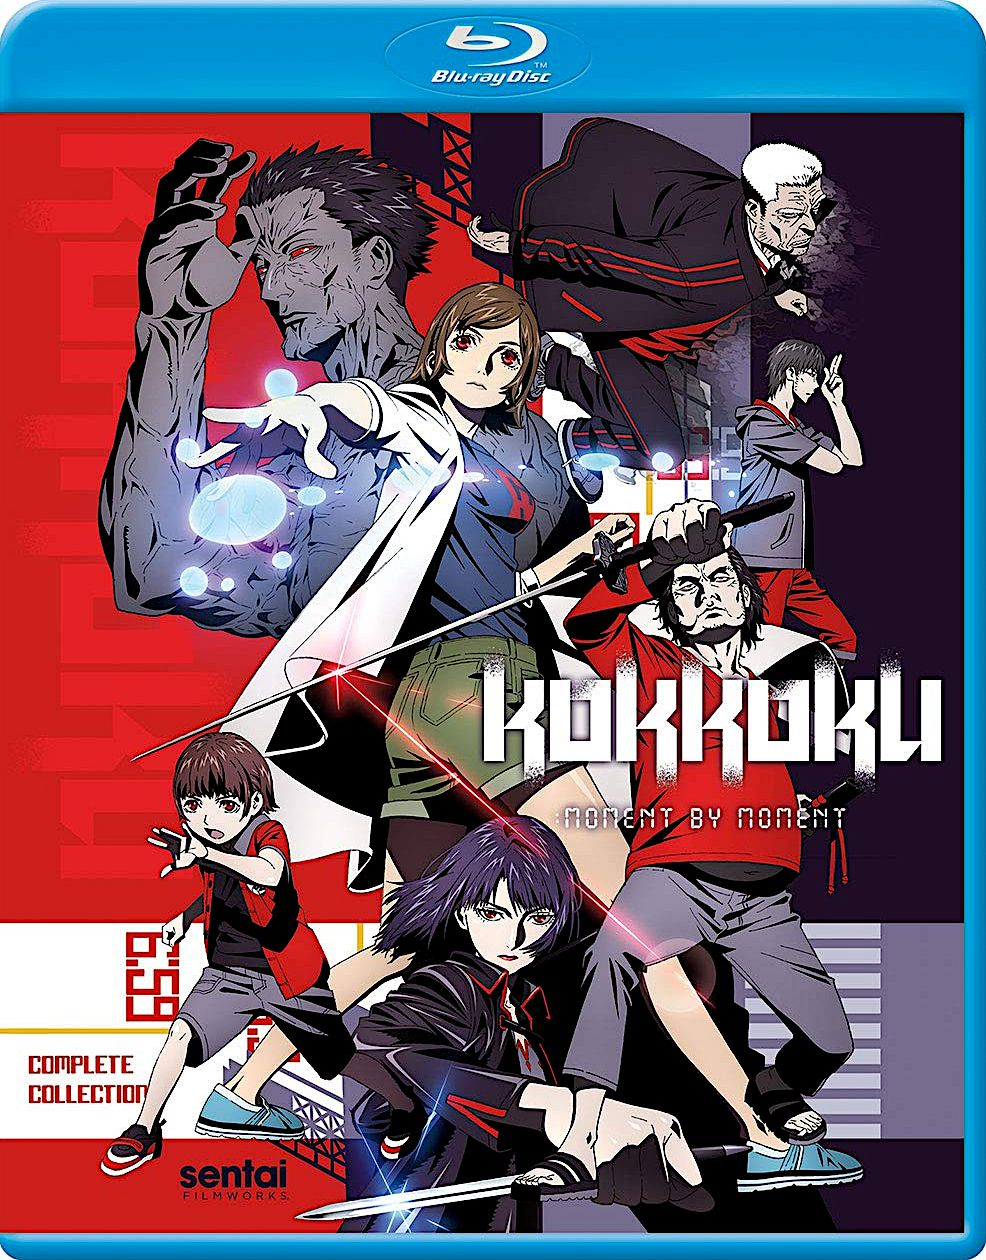 KOKKOKU COMPLETE COLLECTION BLURAY SET (SECTION 23